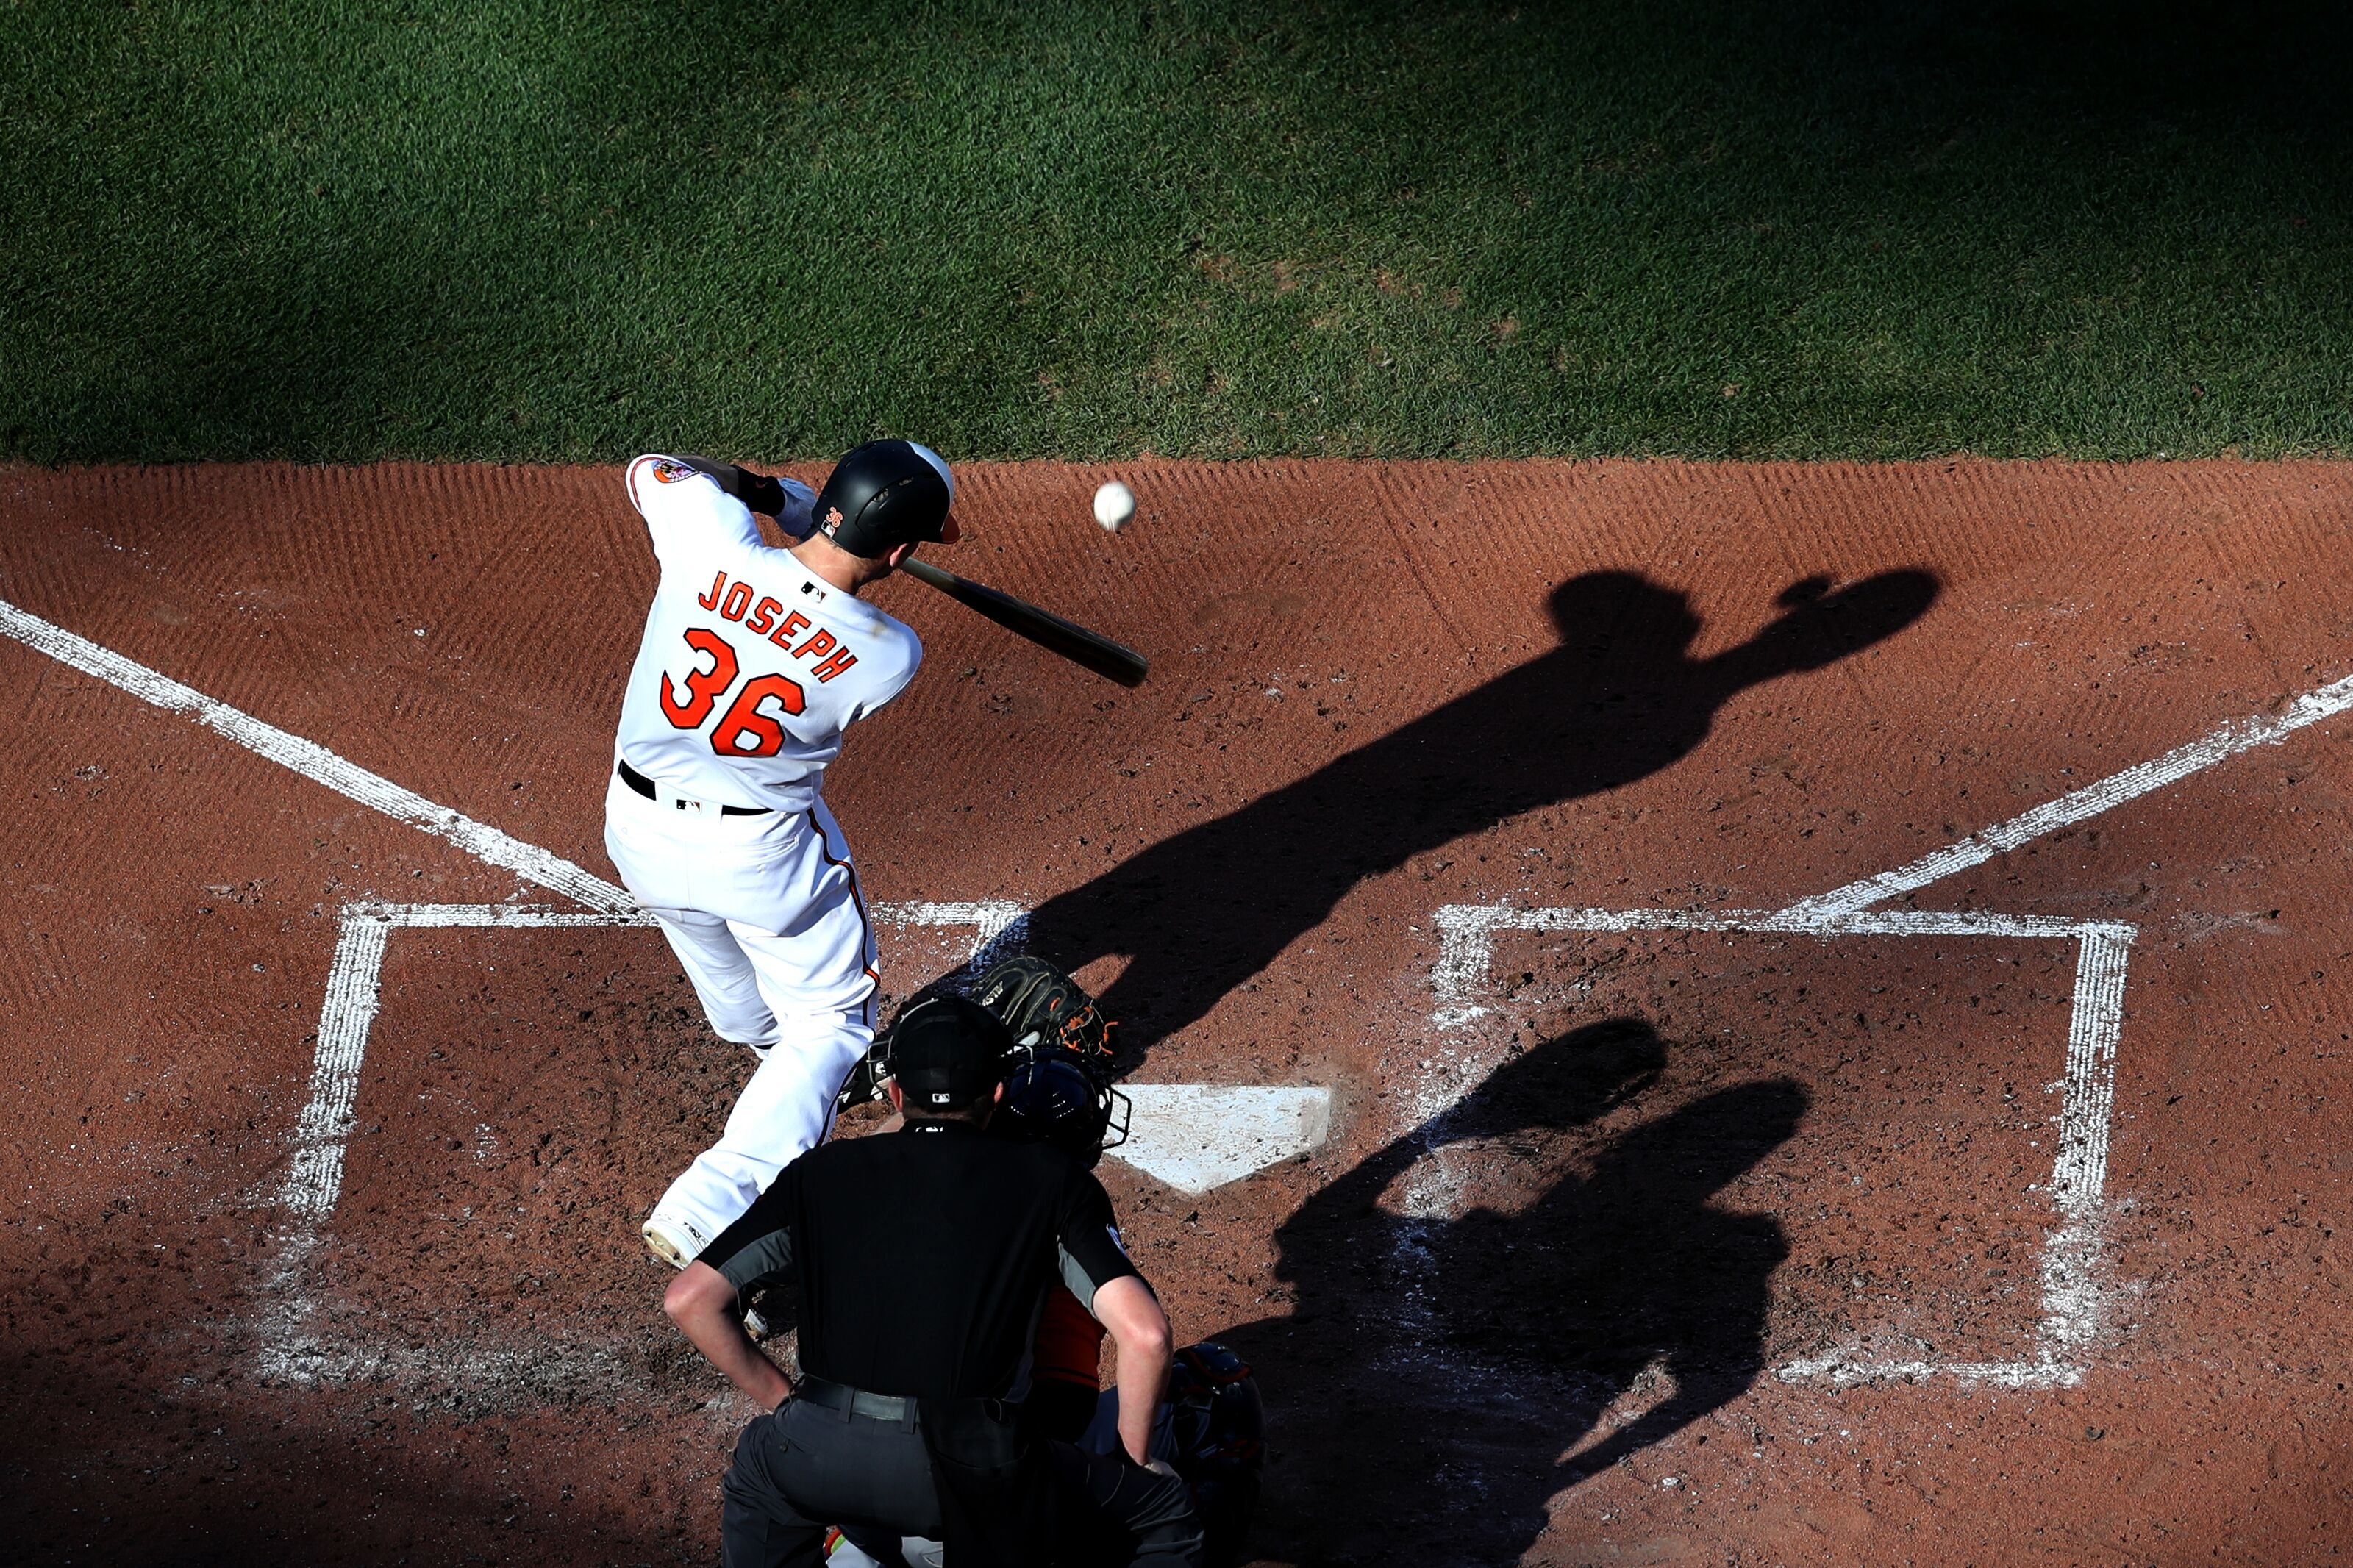 It's time for the Baltimore Orioles to move on from Caleb Joseph